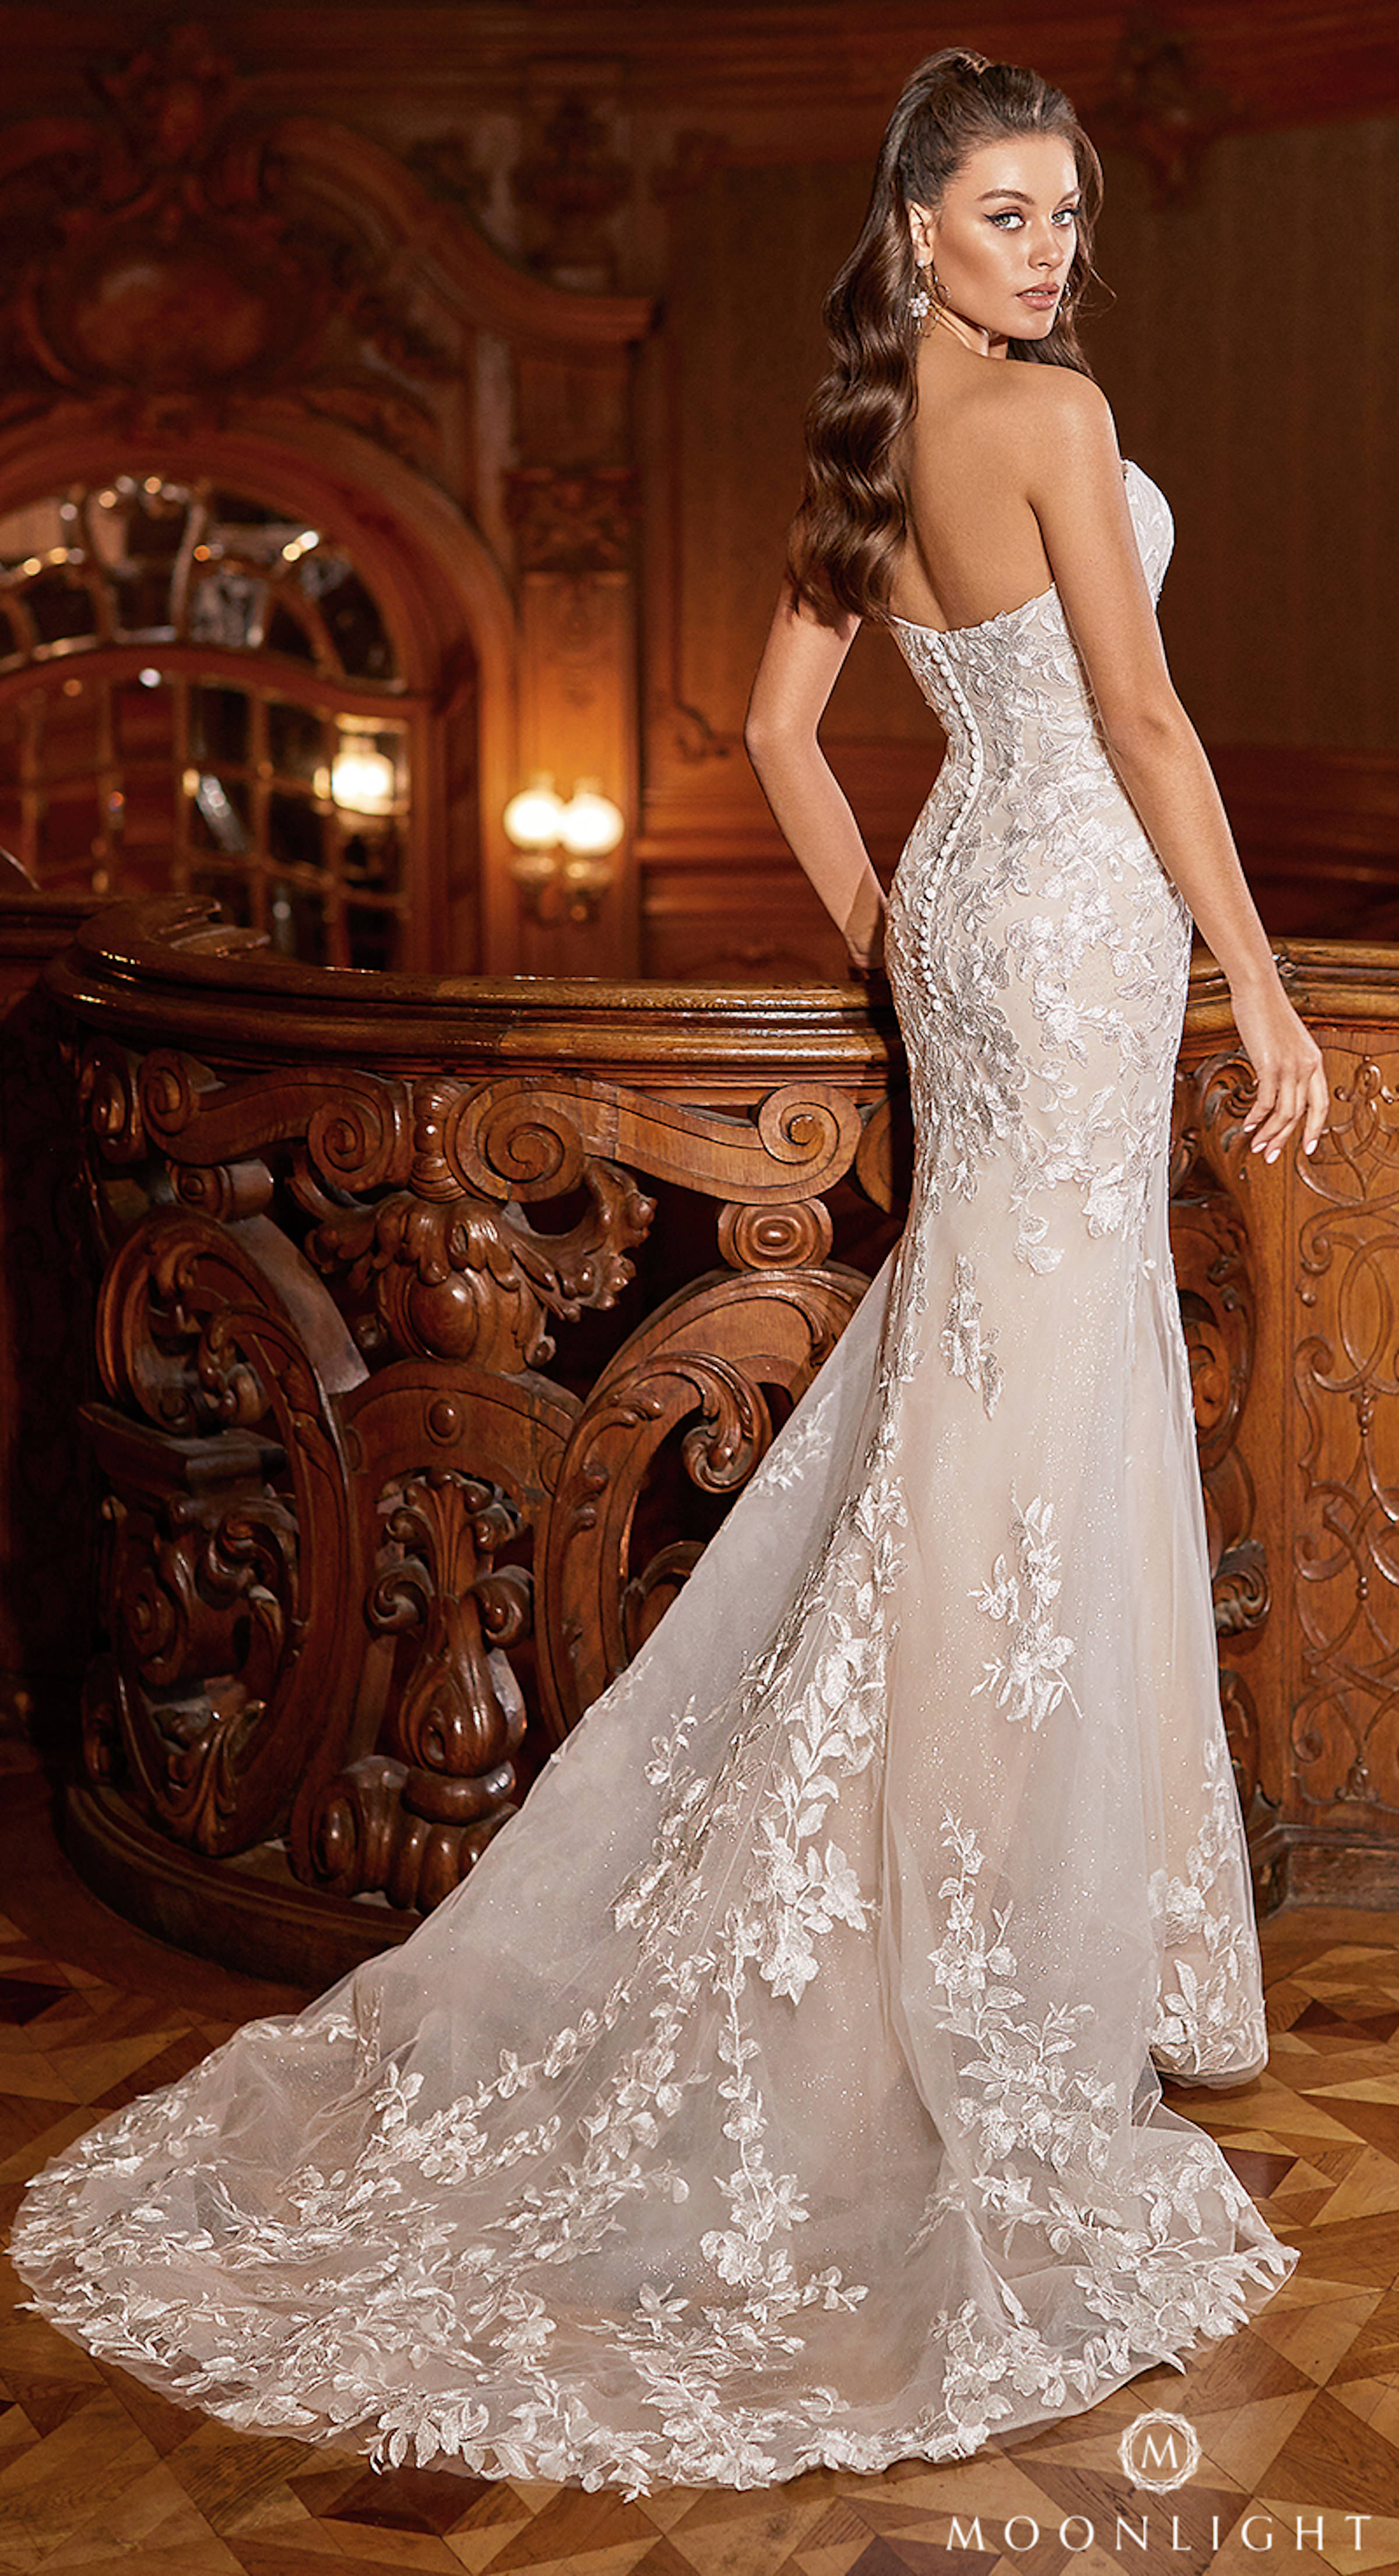 Gilded X Moonlight Collection Fall 2021 Wedding Dresses - J6822